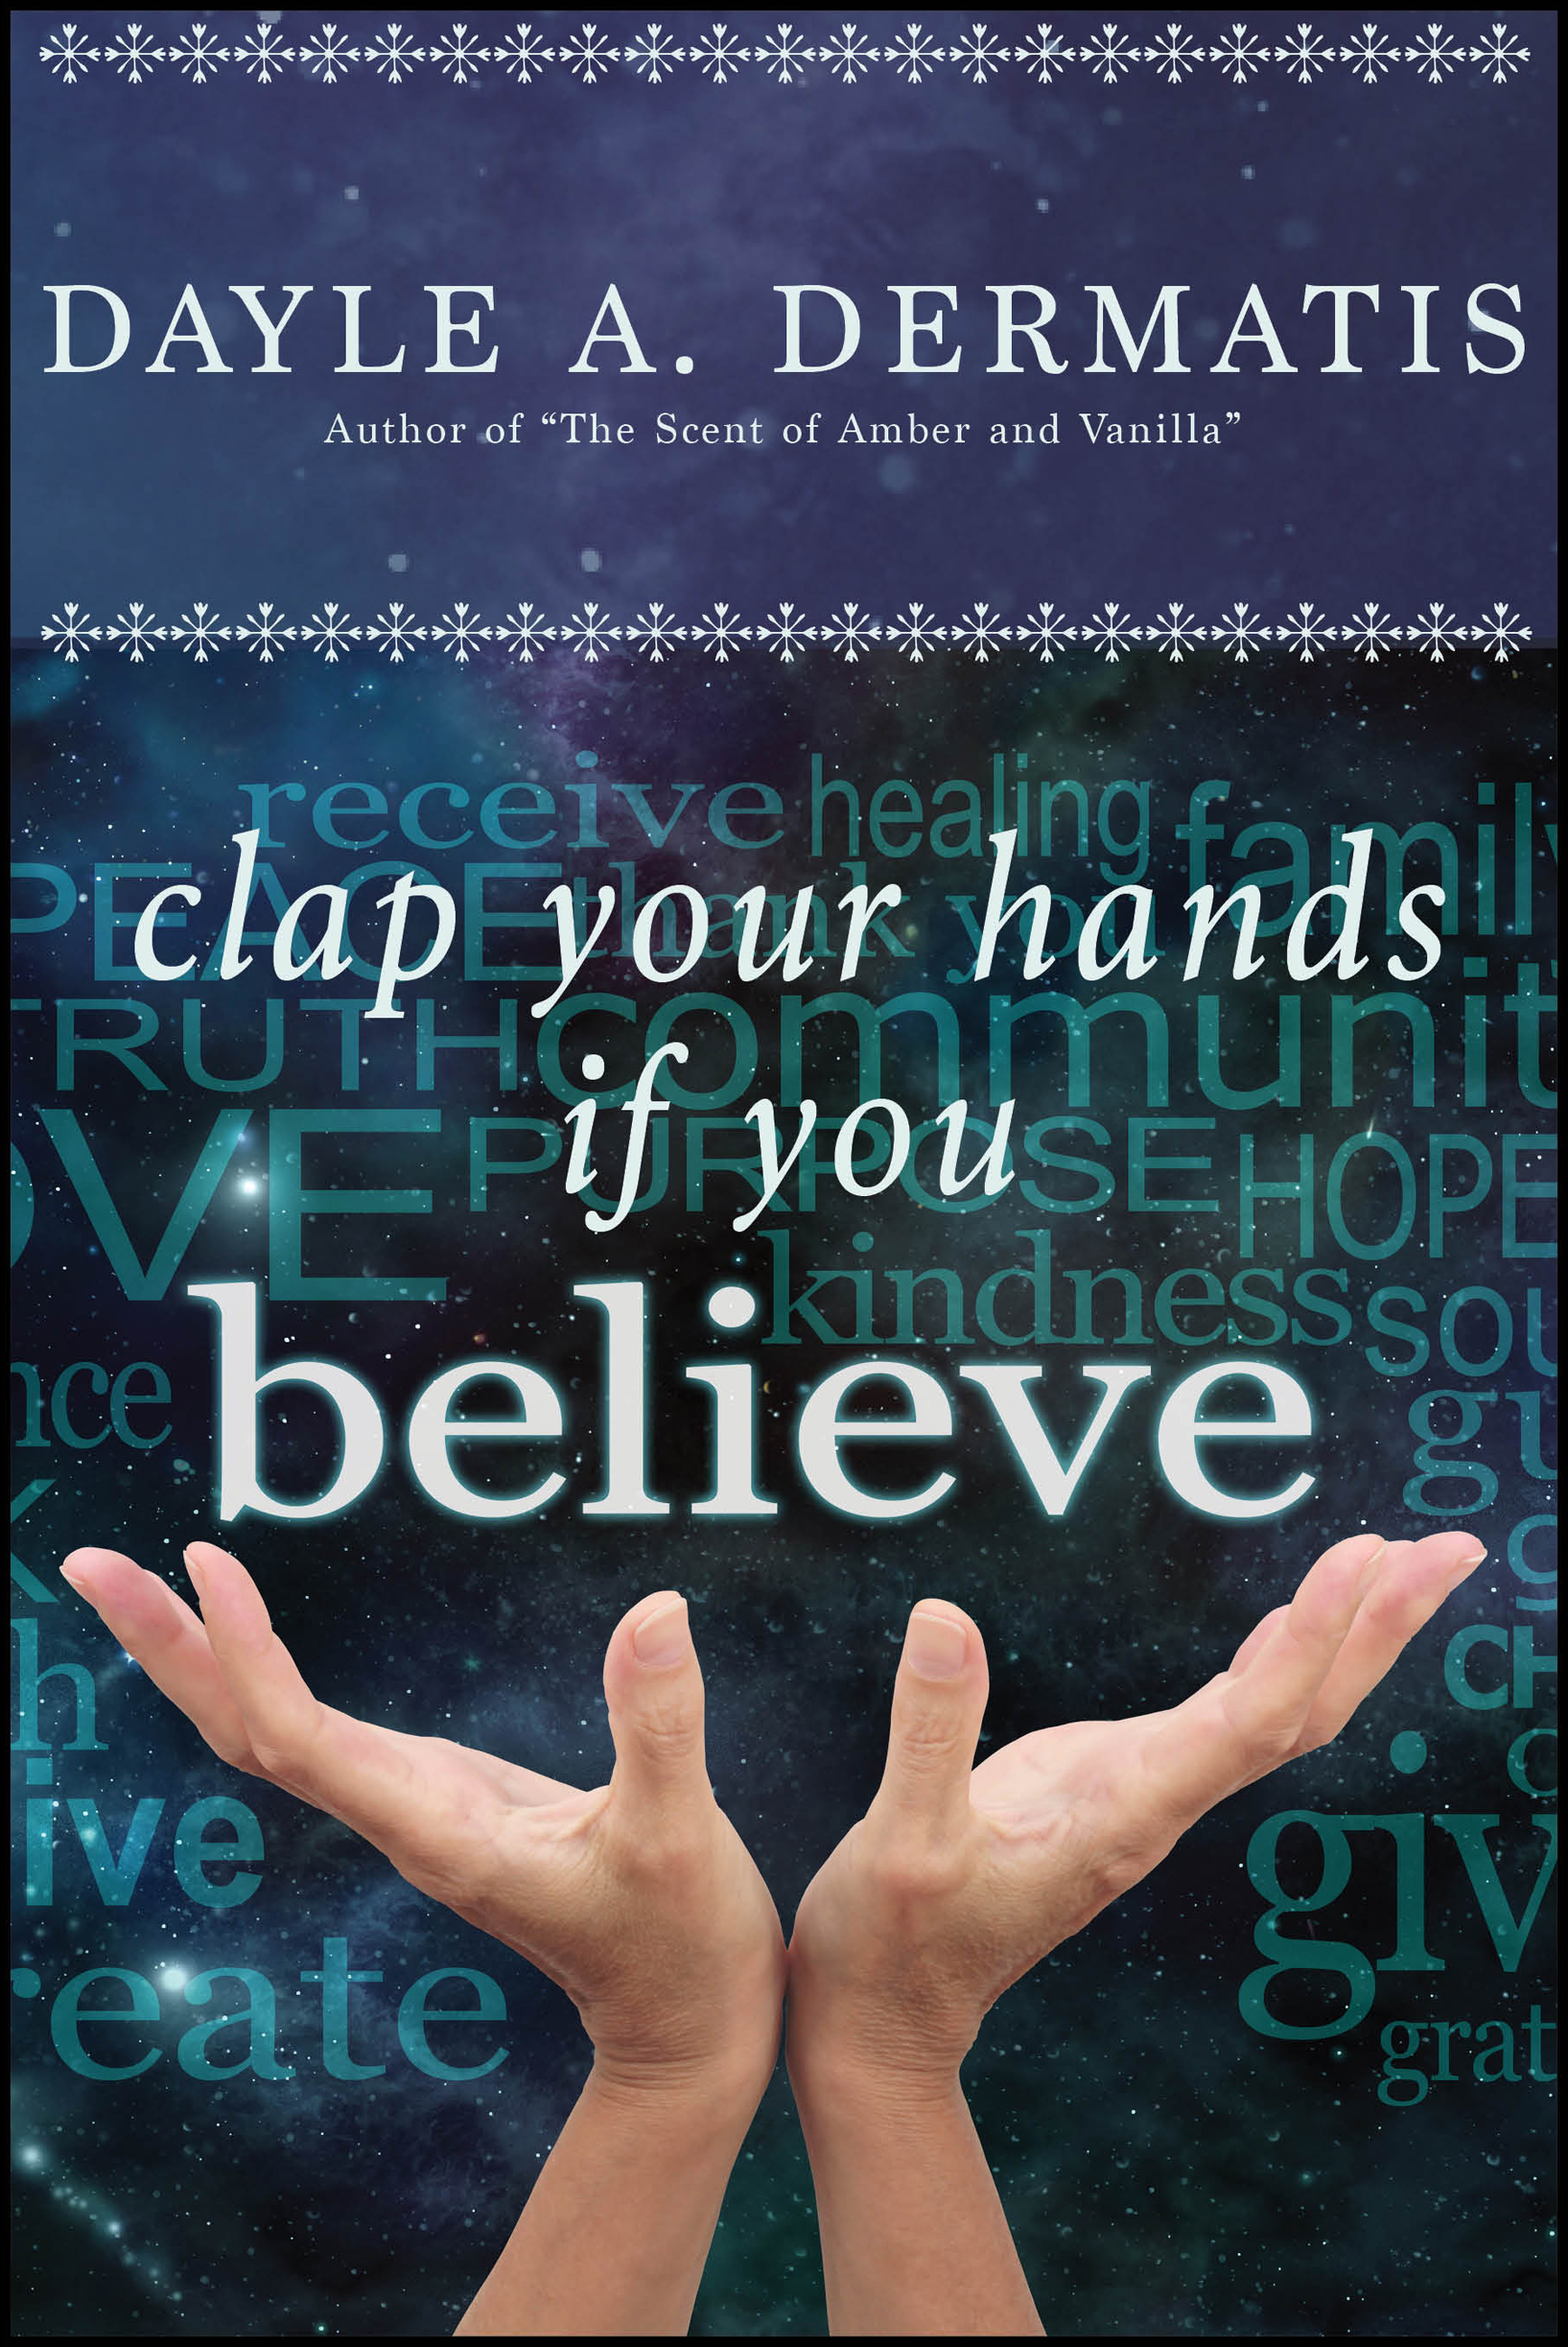 Clap You Hands If You Believe Dayle A. Dermatis